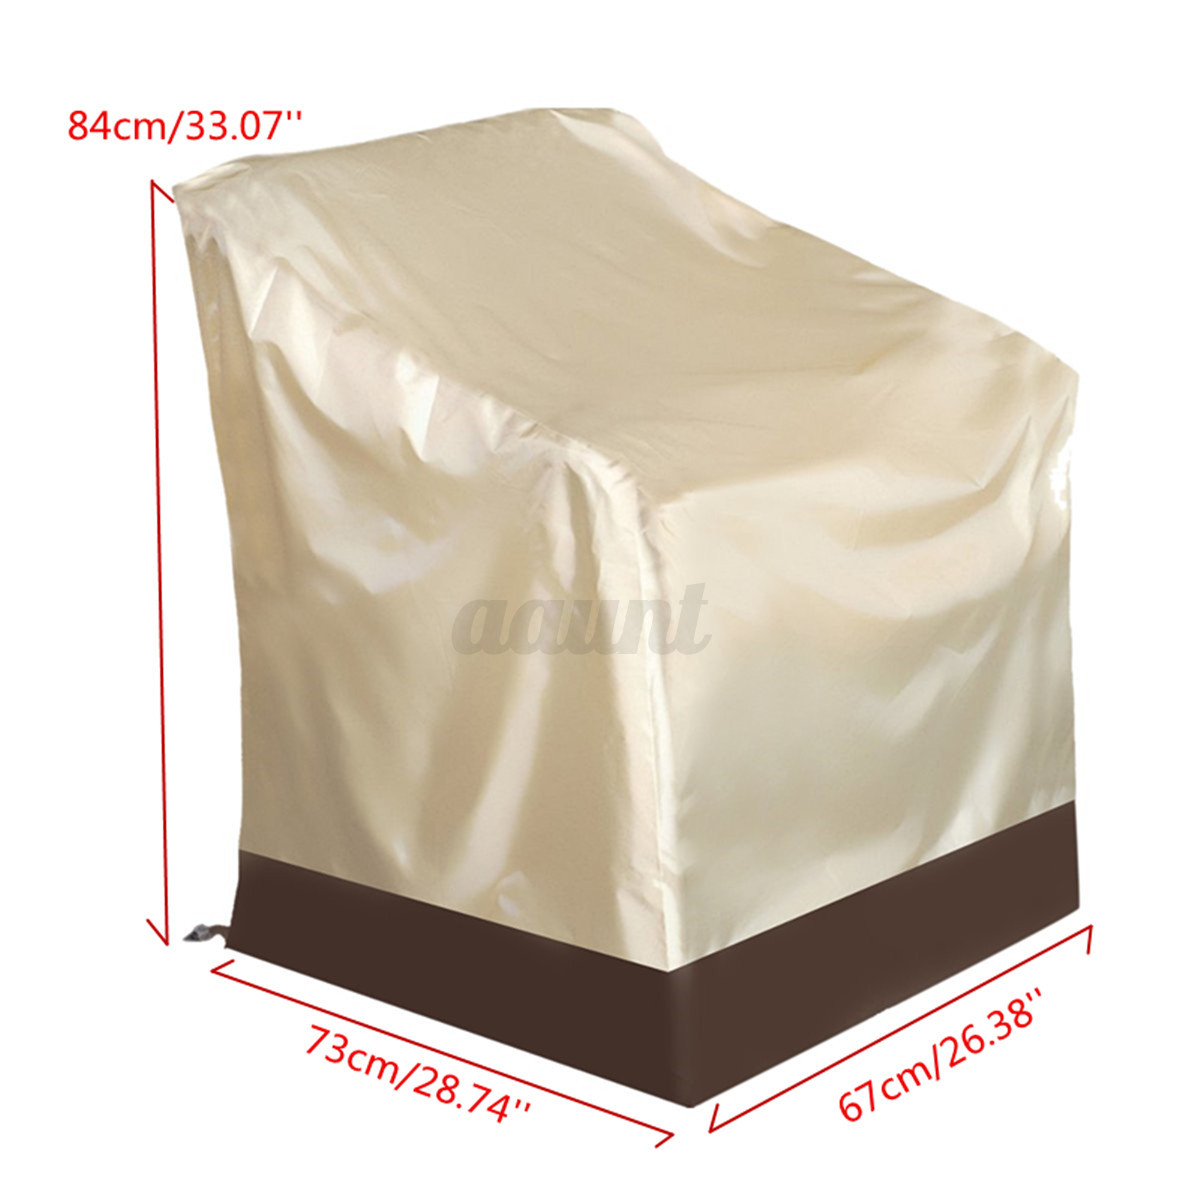 Waterproof Chair Covers Waterproof Patio Single High Back Chair Covers Outdoor